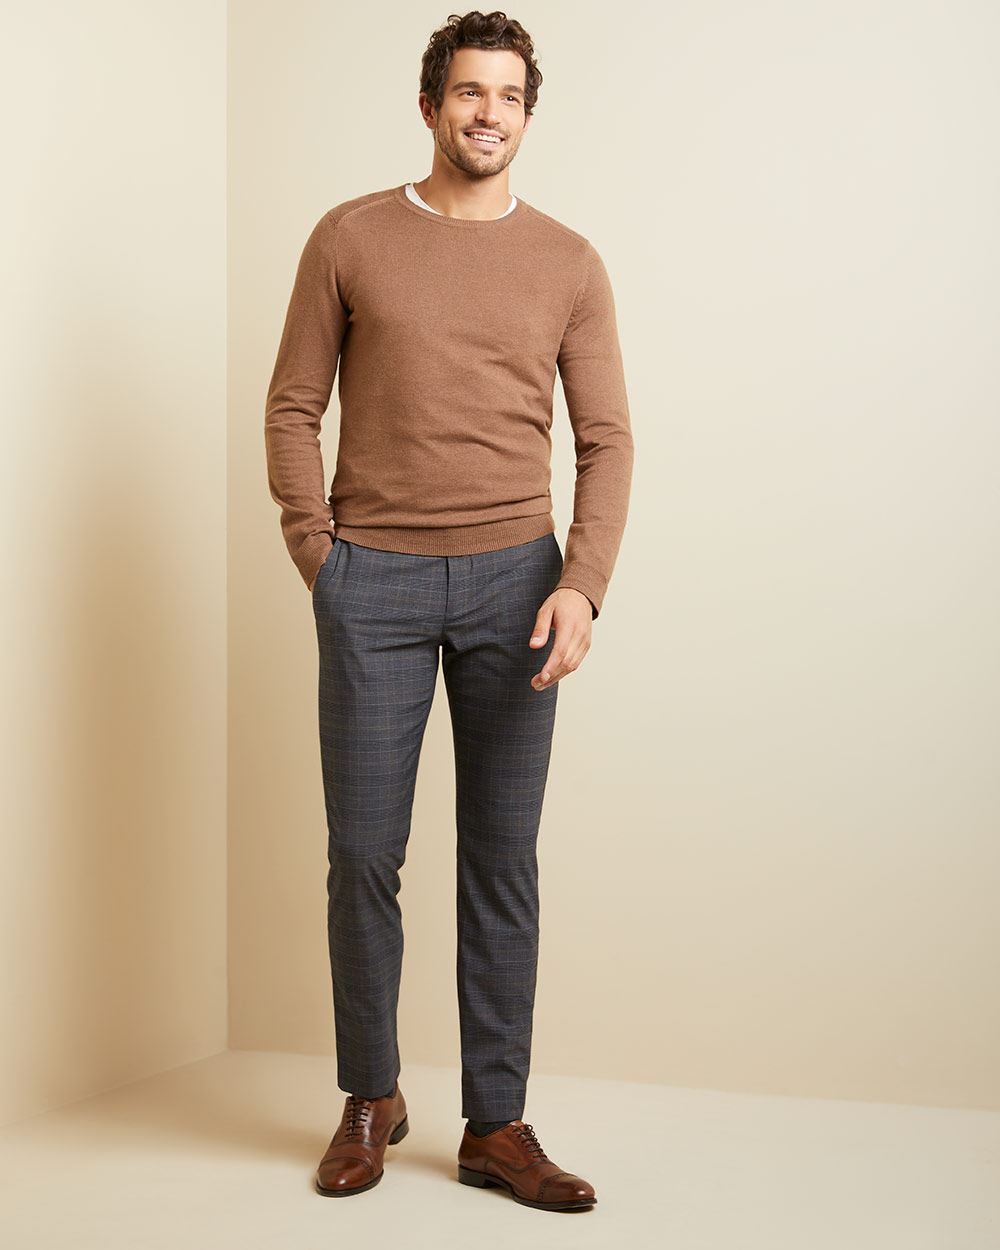 Slim fit camel and grey check city pant